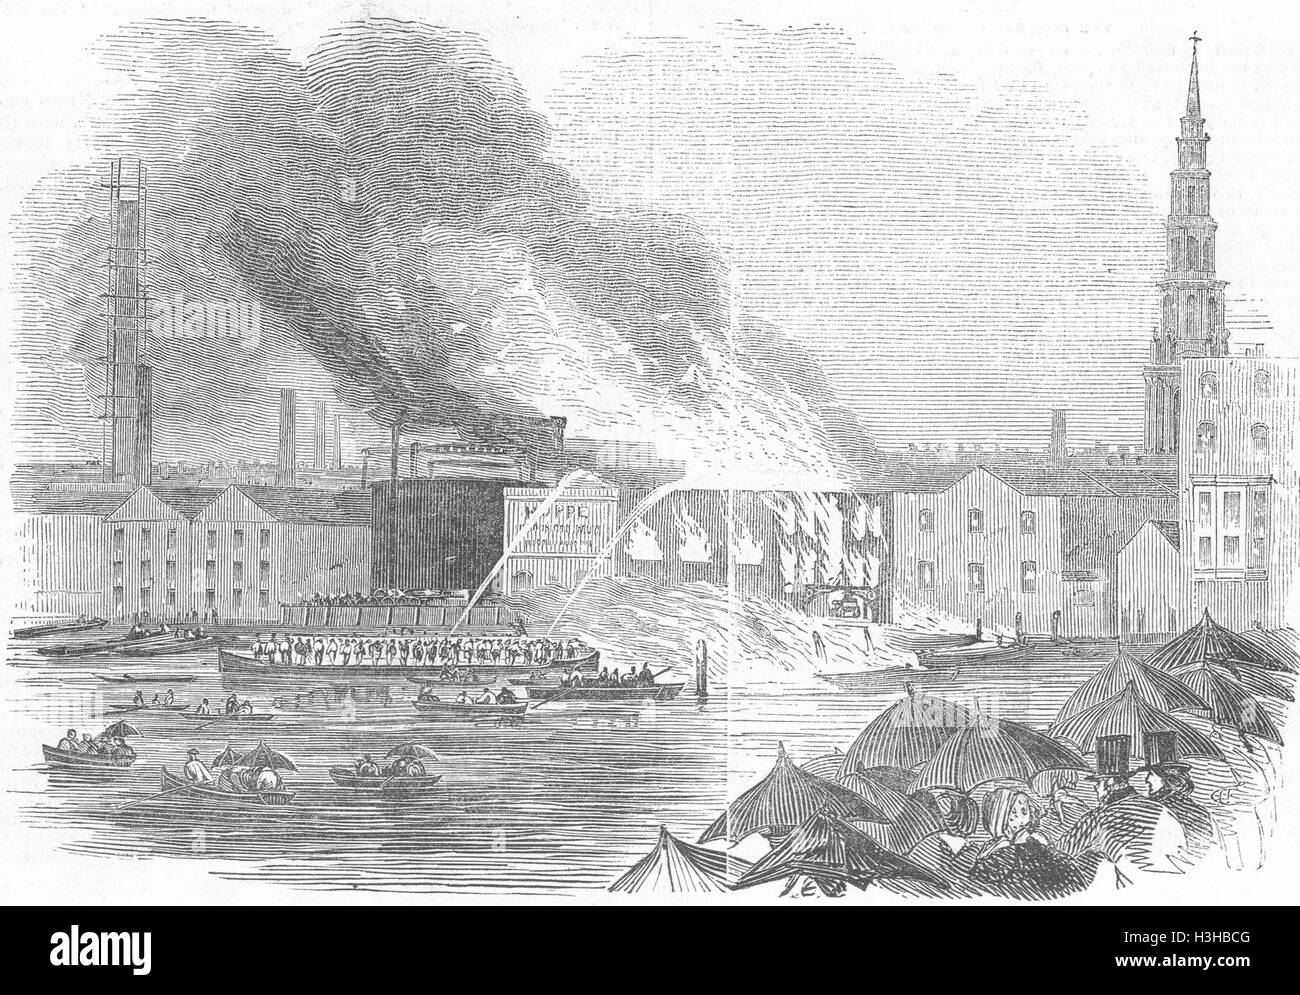 BLACKFRIARS Conflagration, Price's Wharf 1845. Illustrated London News - Stock Image